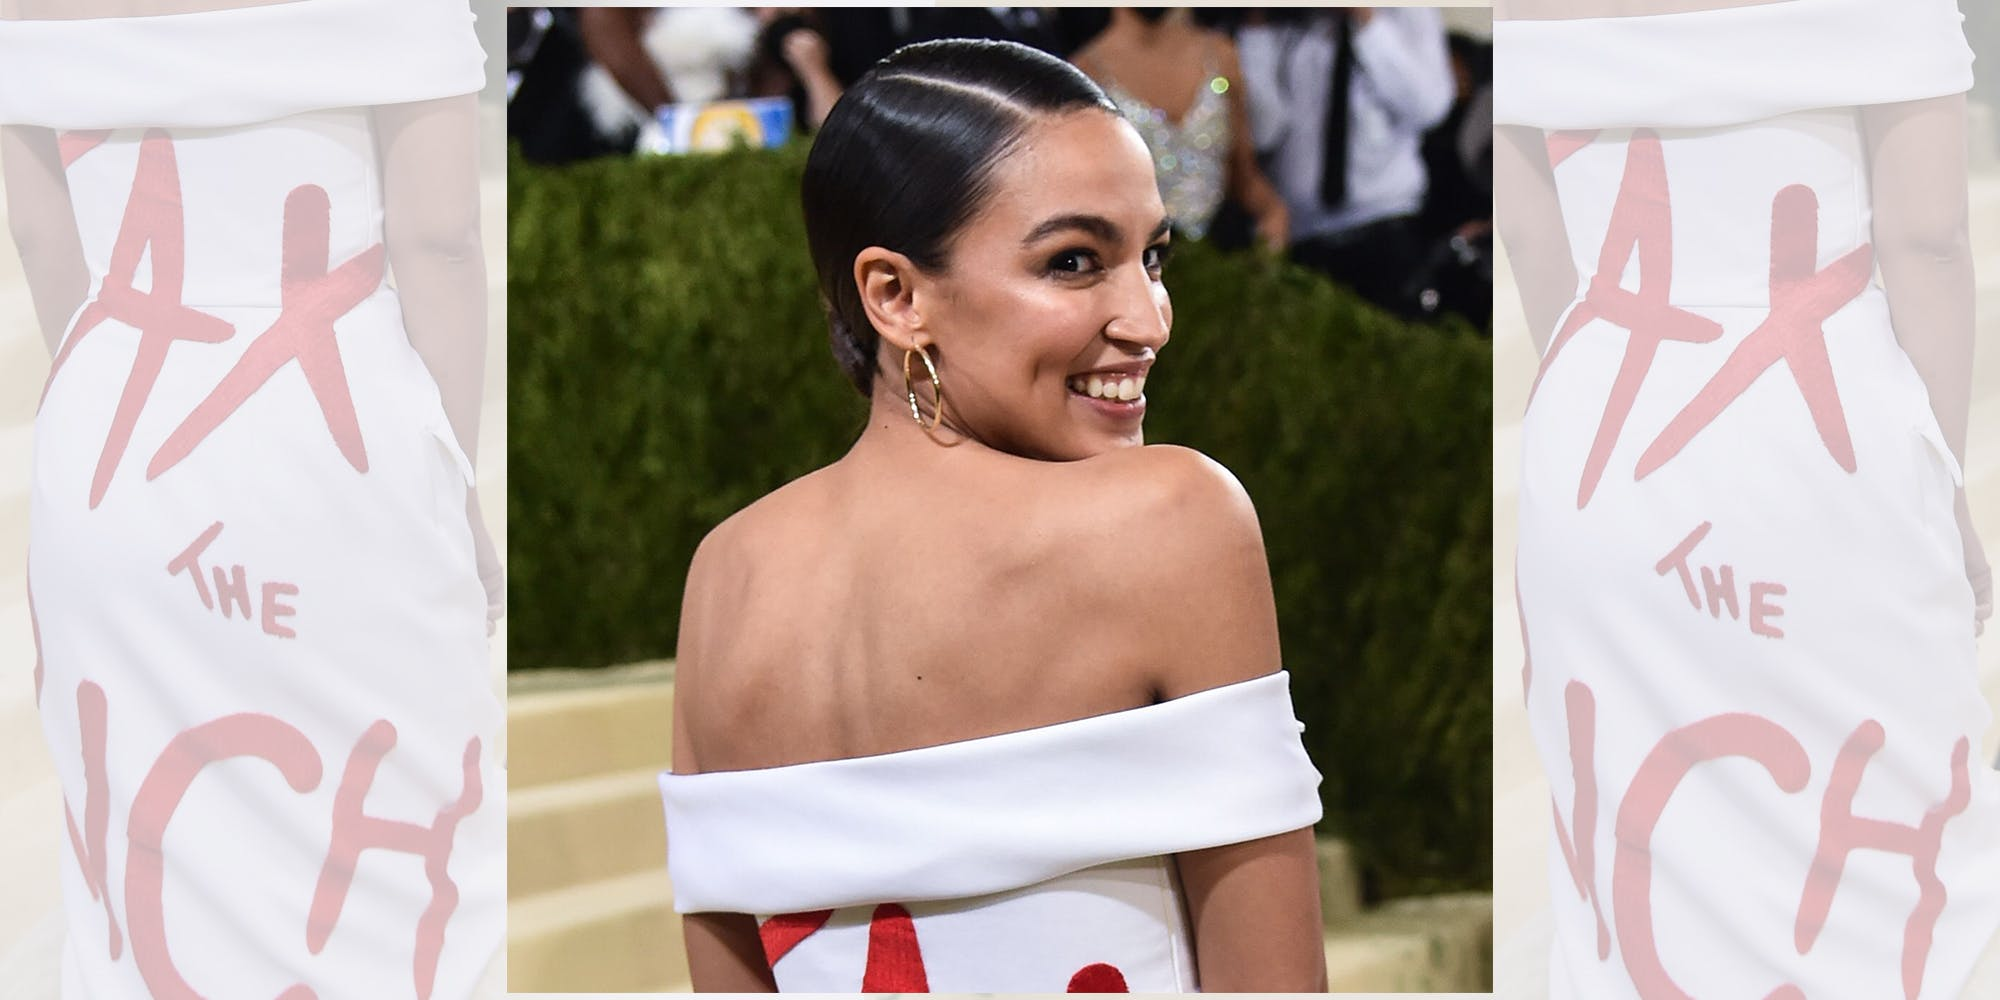 AOC's 'Tax The Rich' Dress Divides Opinions At The Met Gala